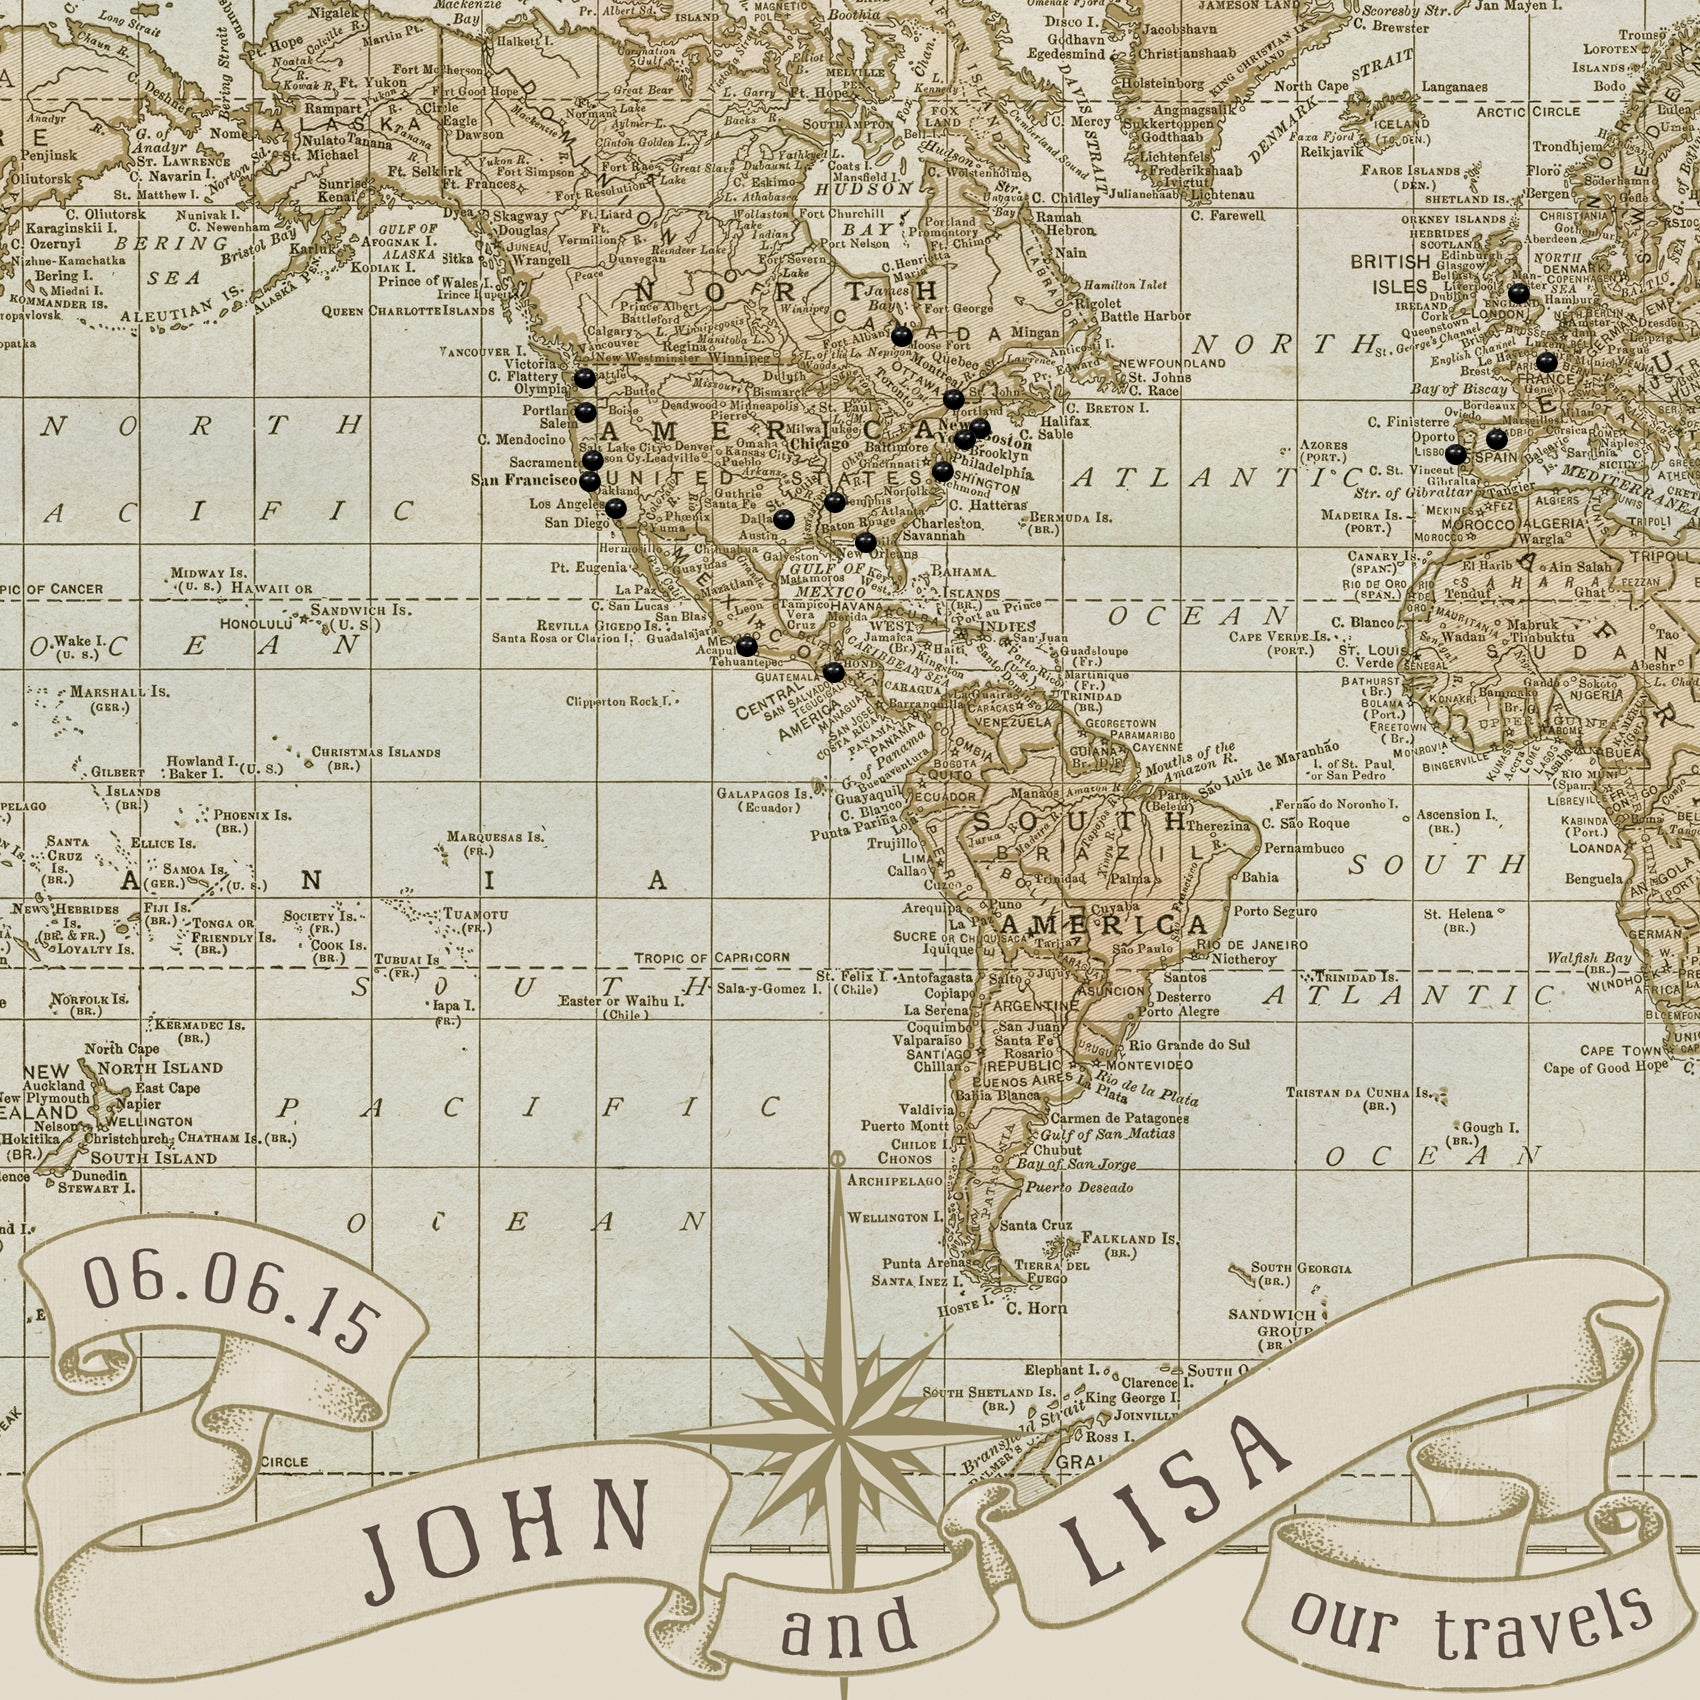 Close up of the wedding anniversary push pin map; customized with the names John and Lisa